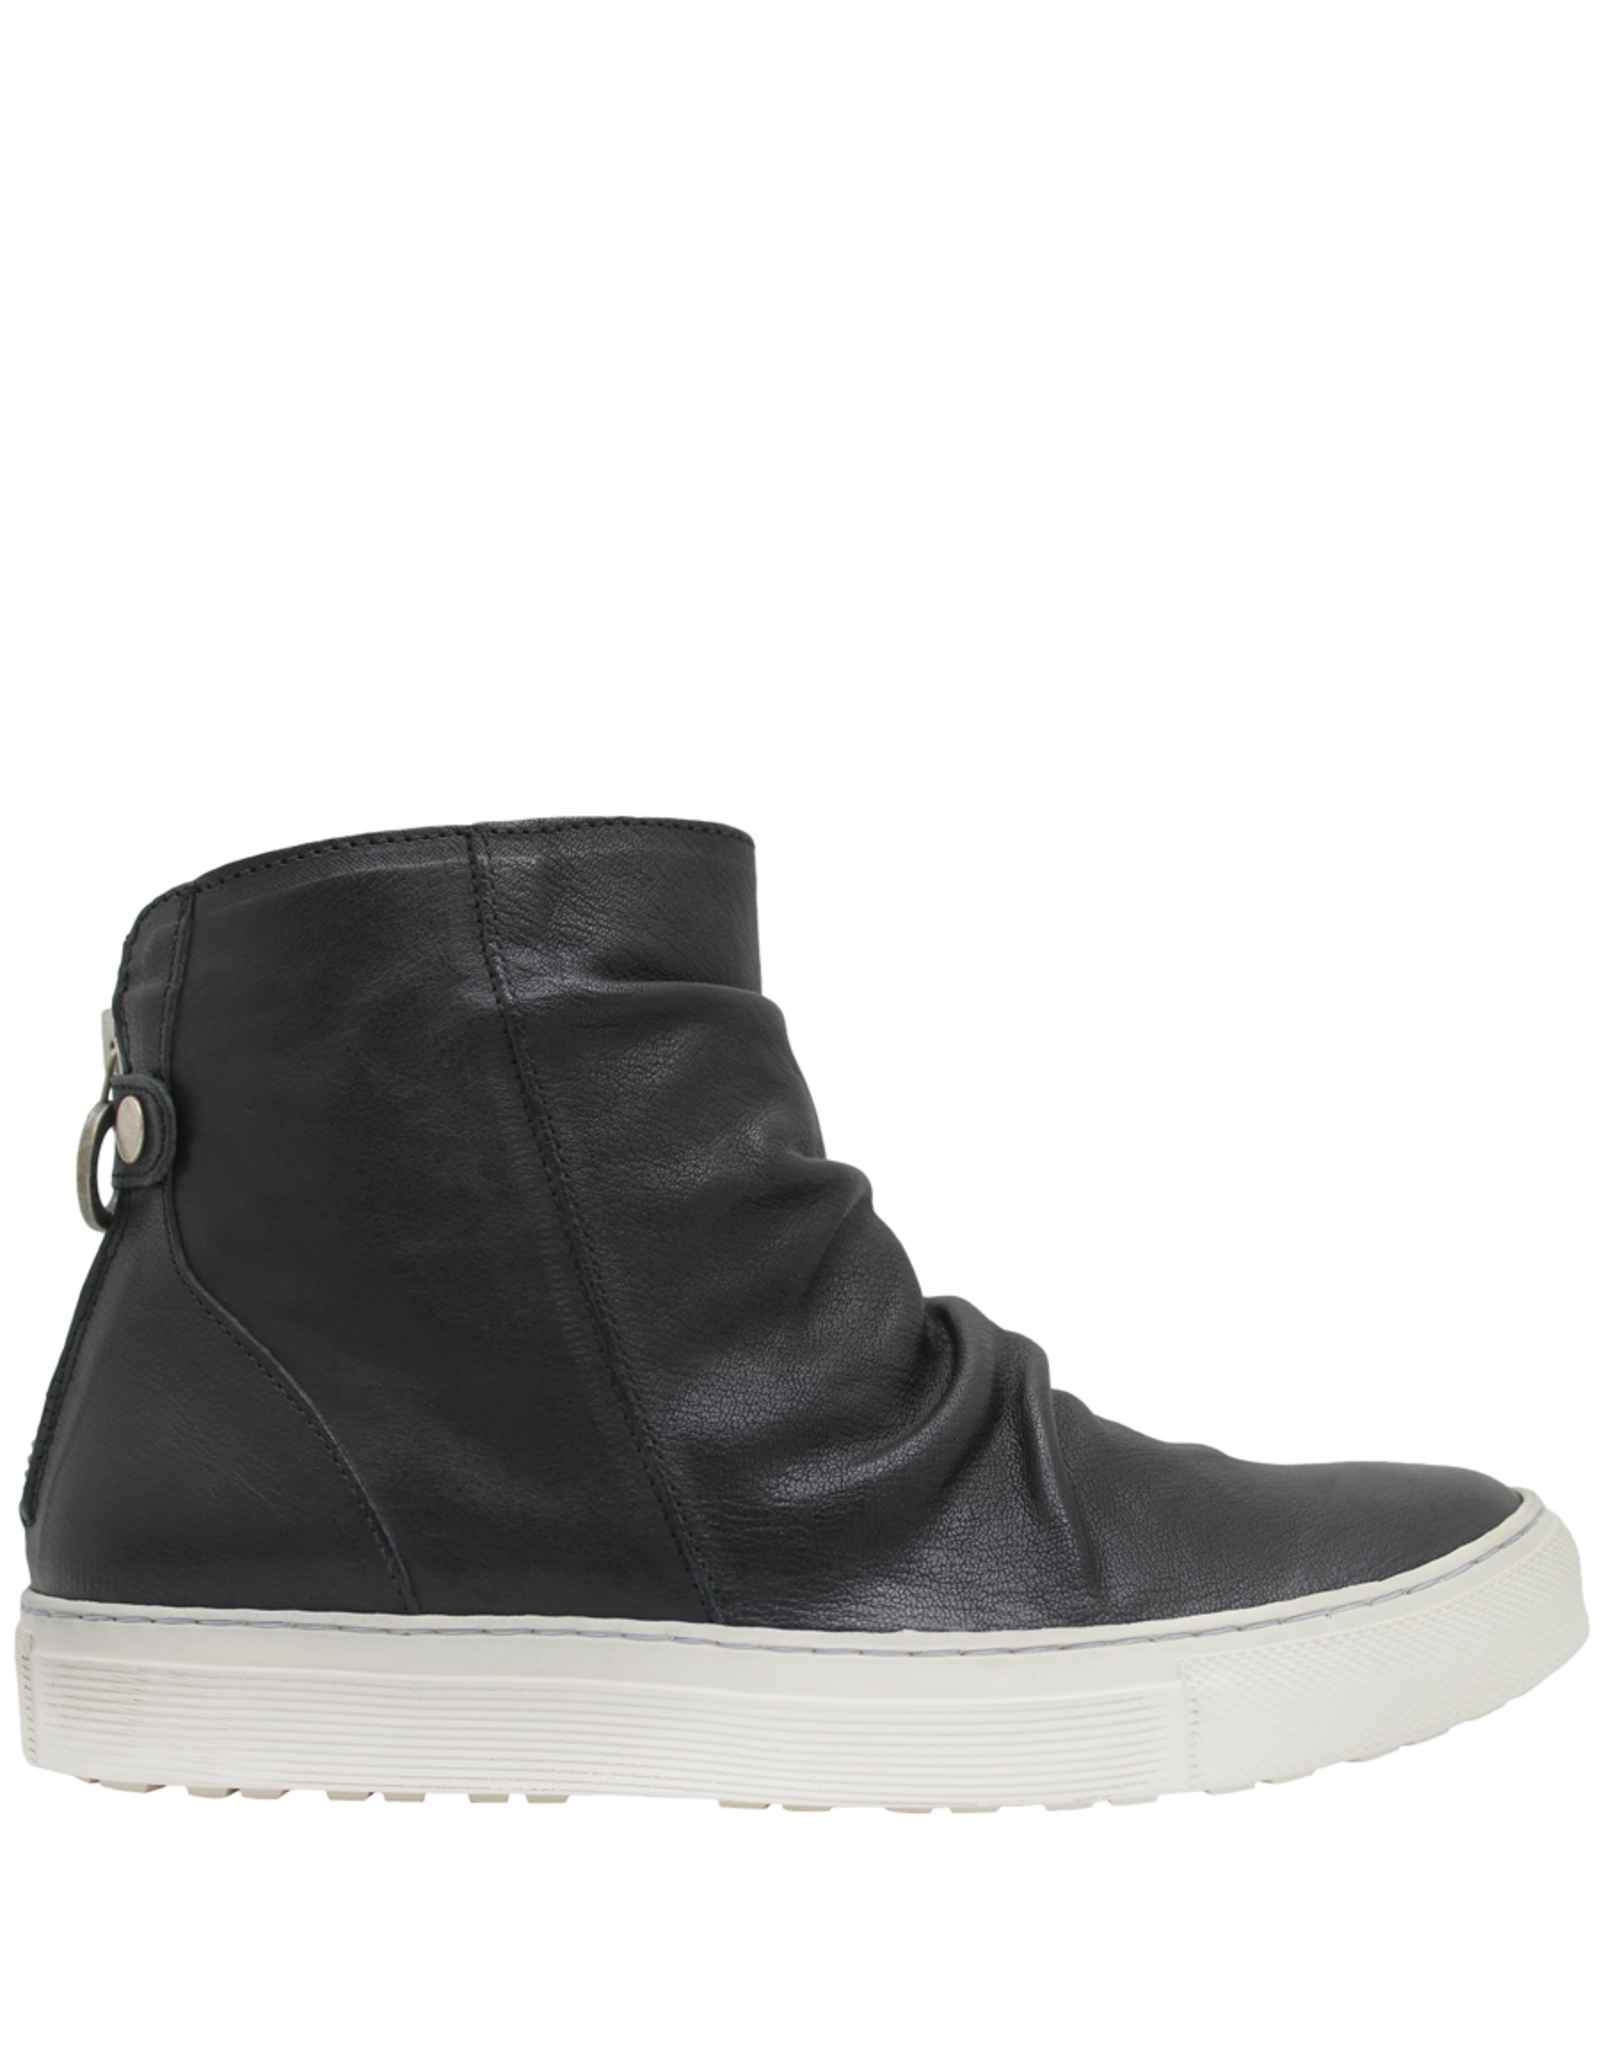 Fiorentini+Baker Fiorentini+Baker BlackHigh Top Sneaker With Back Zipper Brody